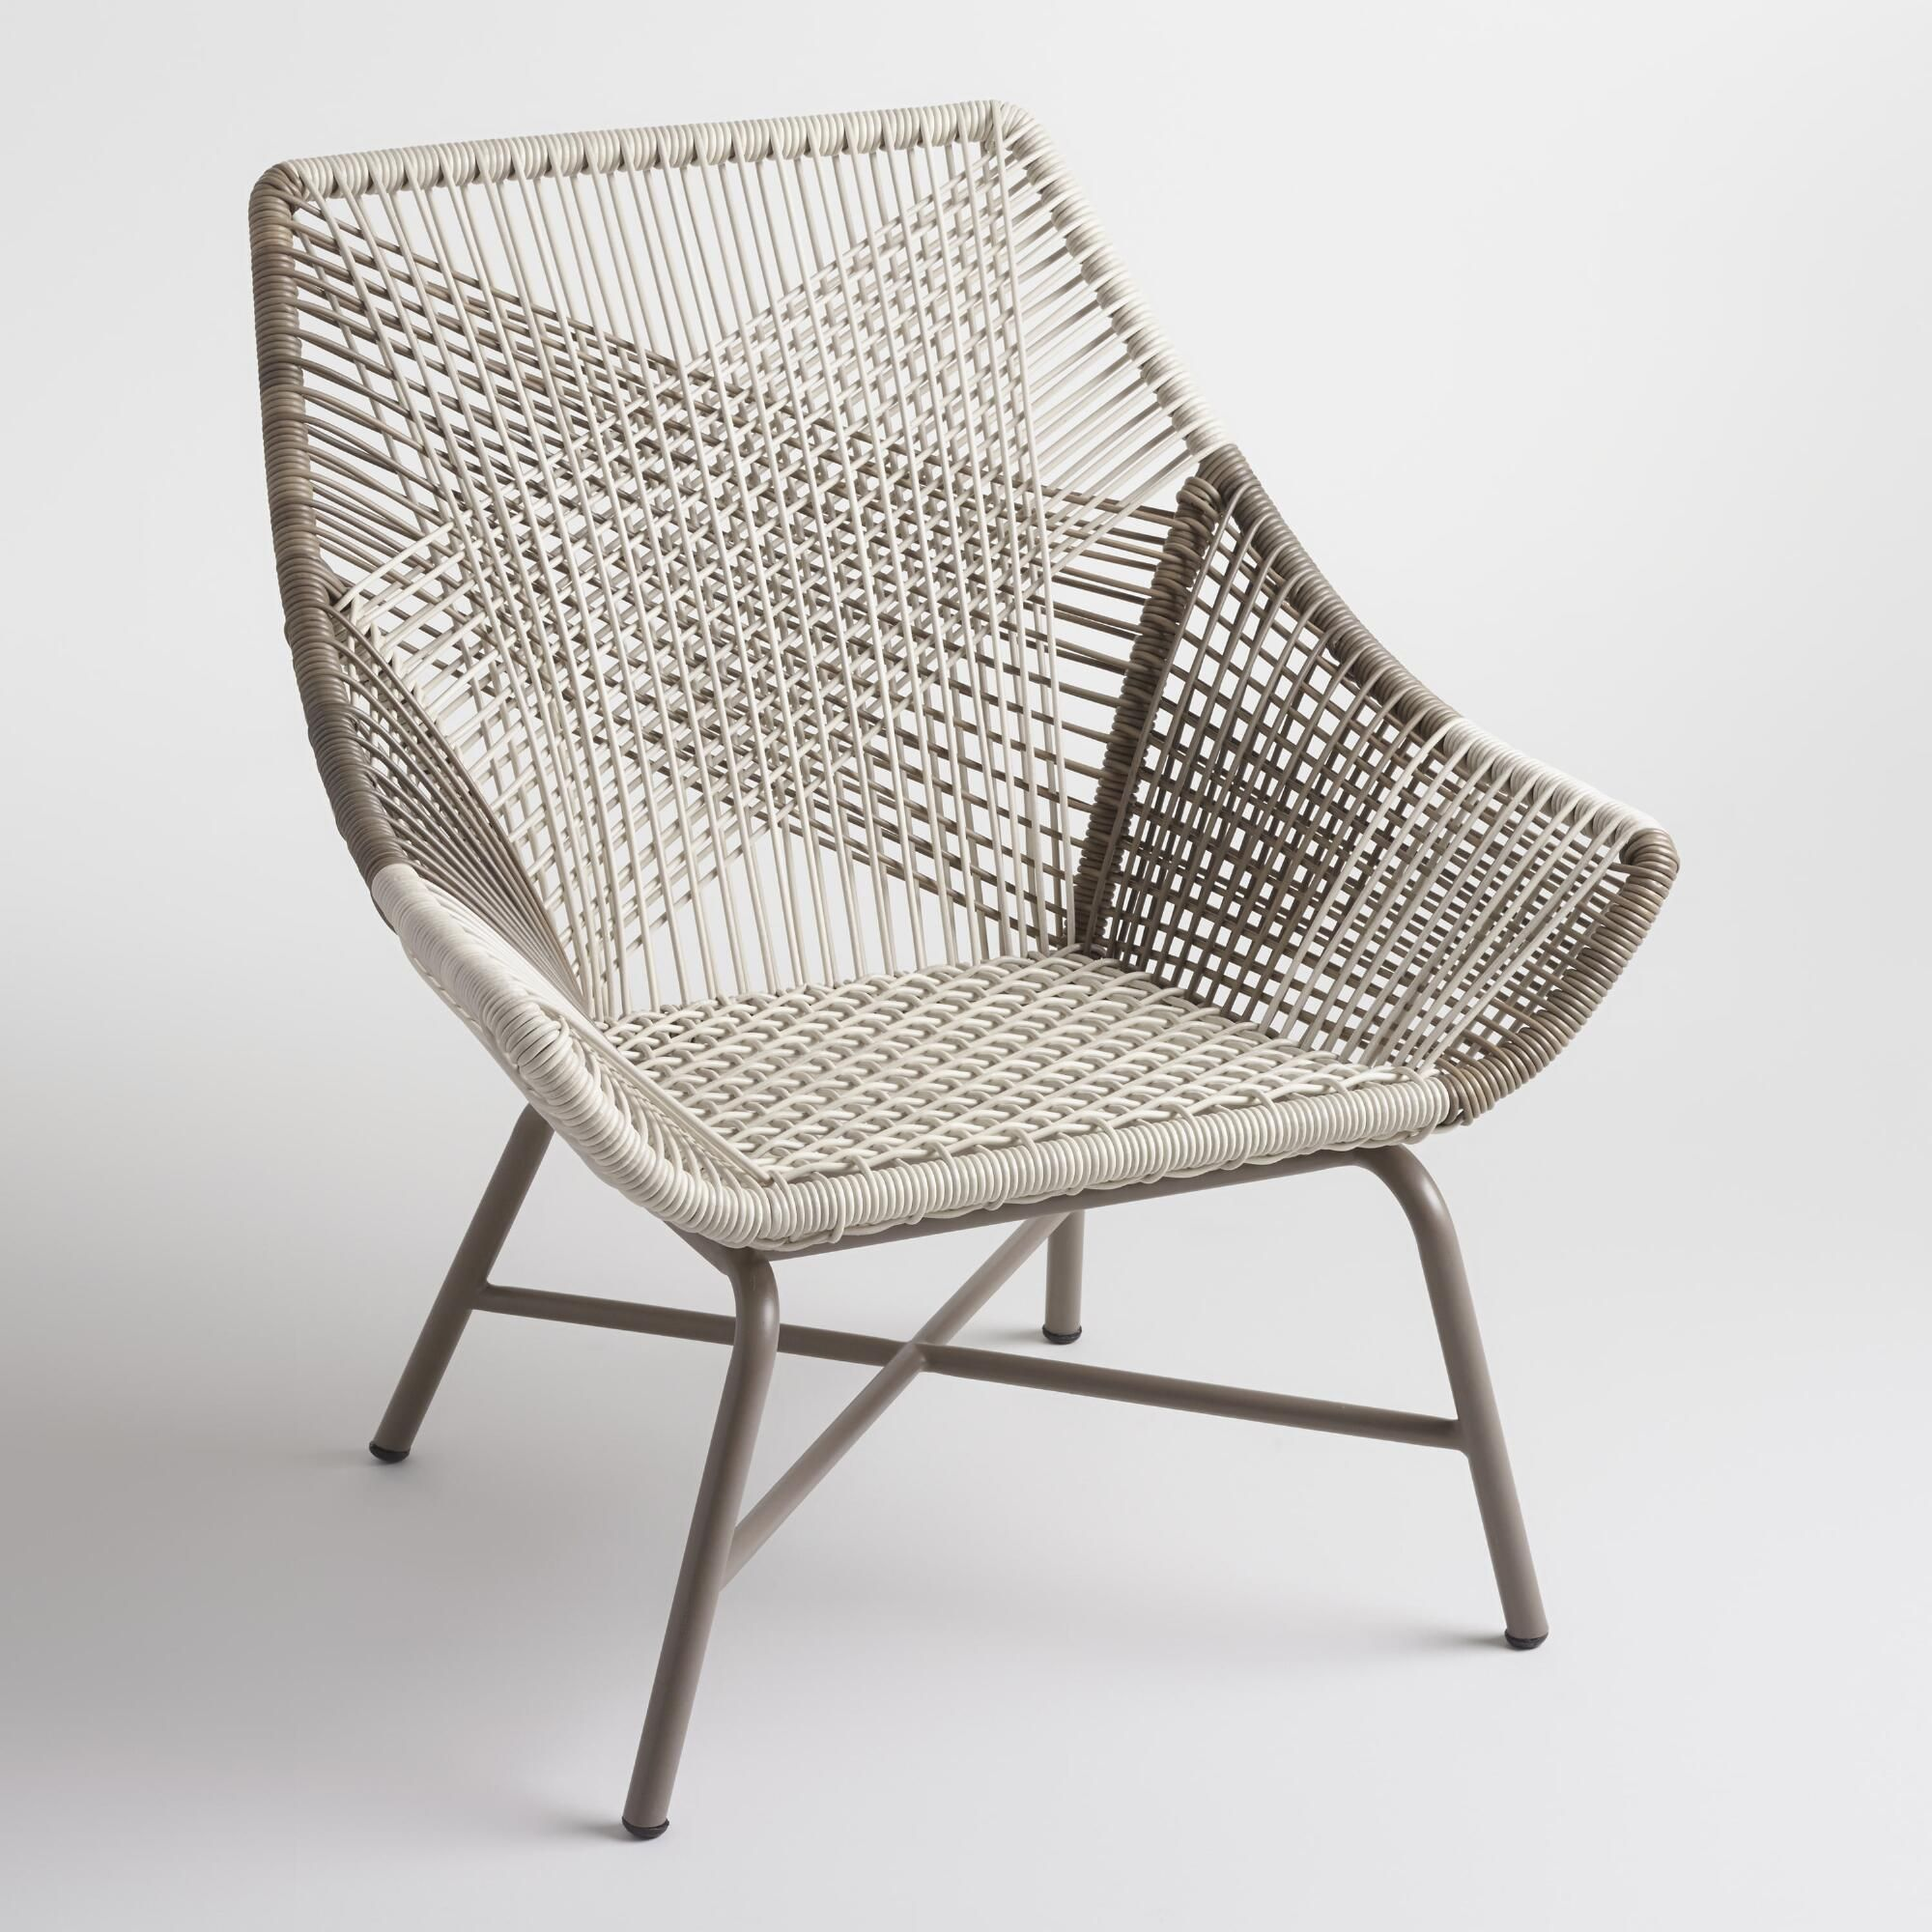 Standing On Iron Legs Our Lounge Chair Is Crafted Of Weather